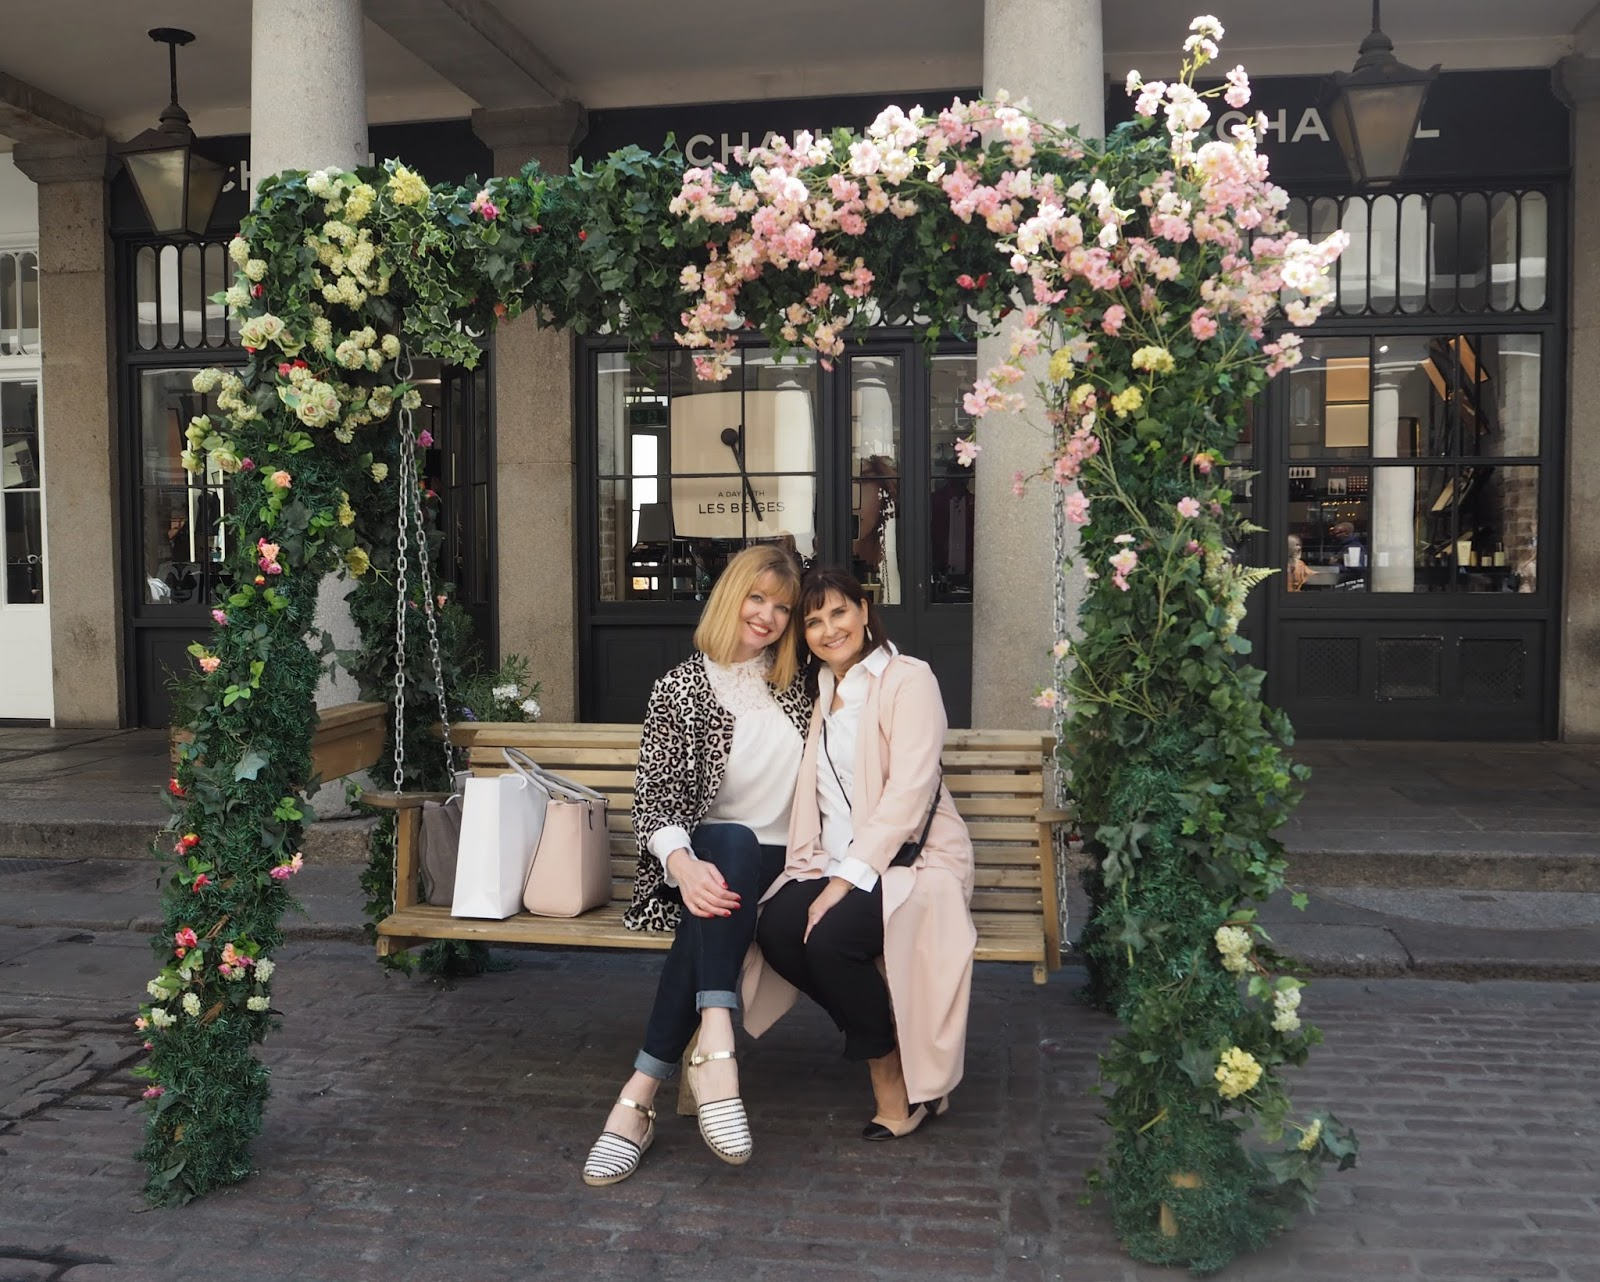 What-Lizzy-Loves-Barefaced-Chic-Covent-Garden-Flower-swings